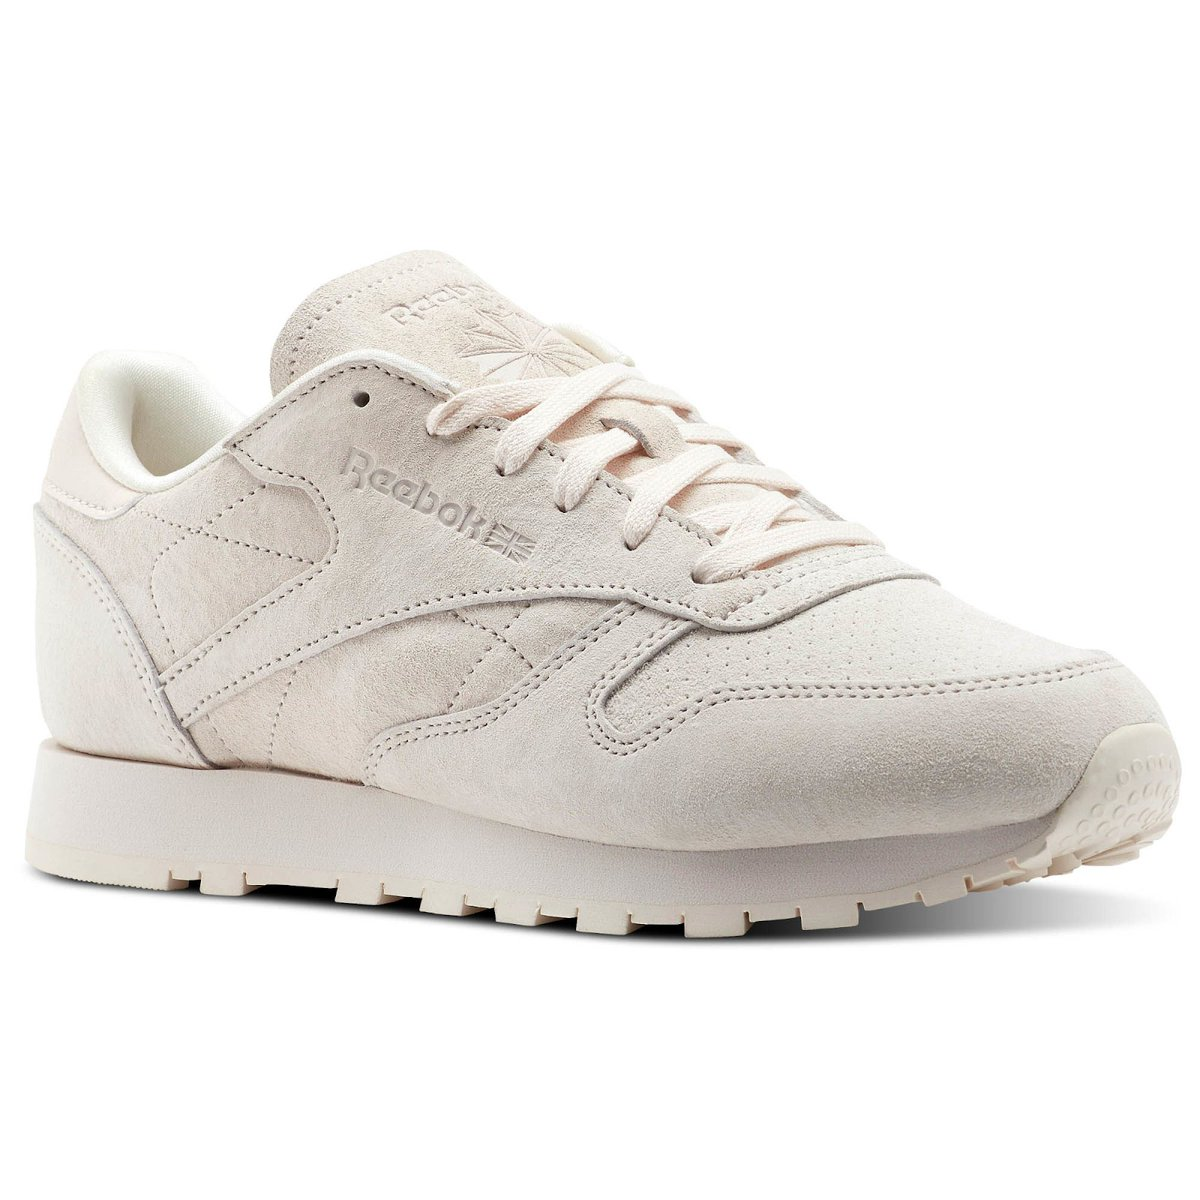 3e1c3cf8f1ef ... sale reebok classic leather nubuk available in store for women reebok  cllthrnbkpic.twitter 2e5zg5odb0 855e0